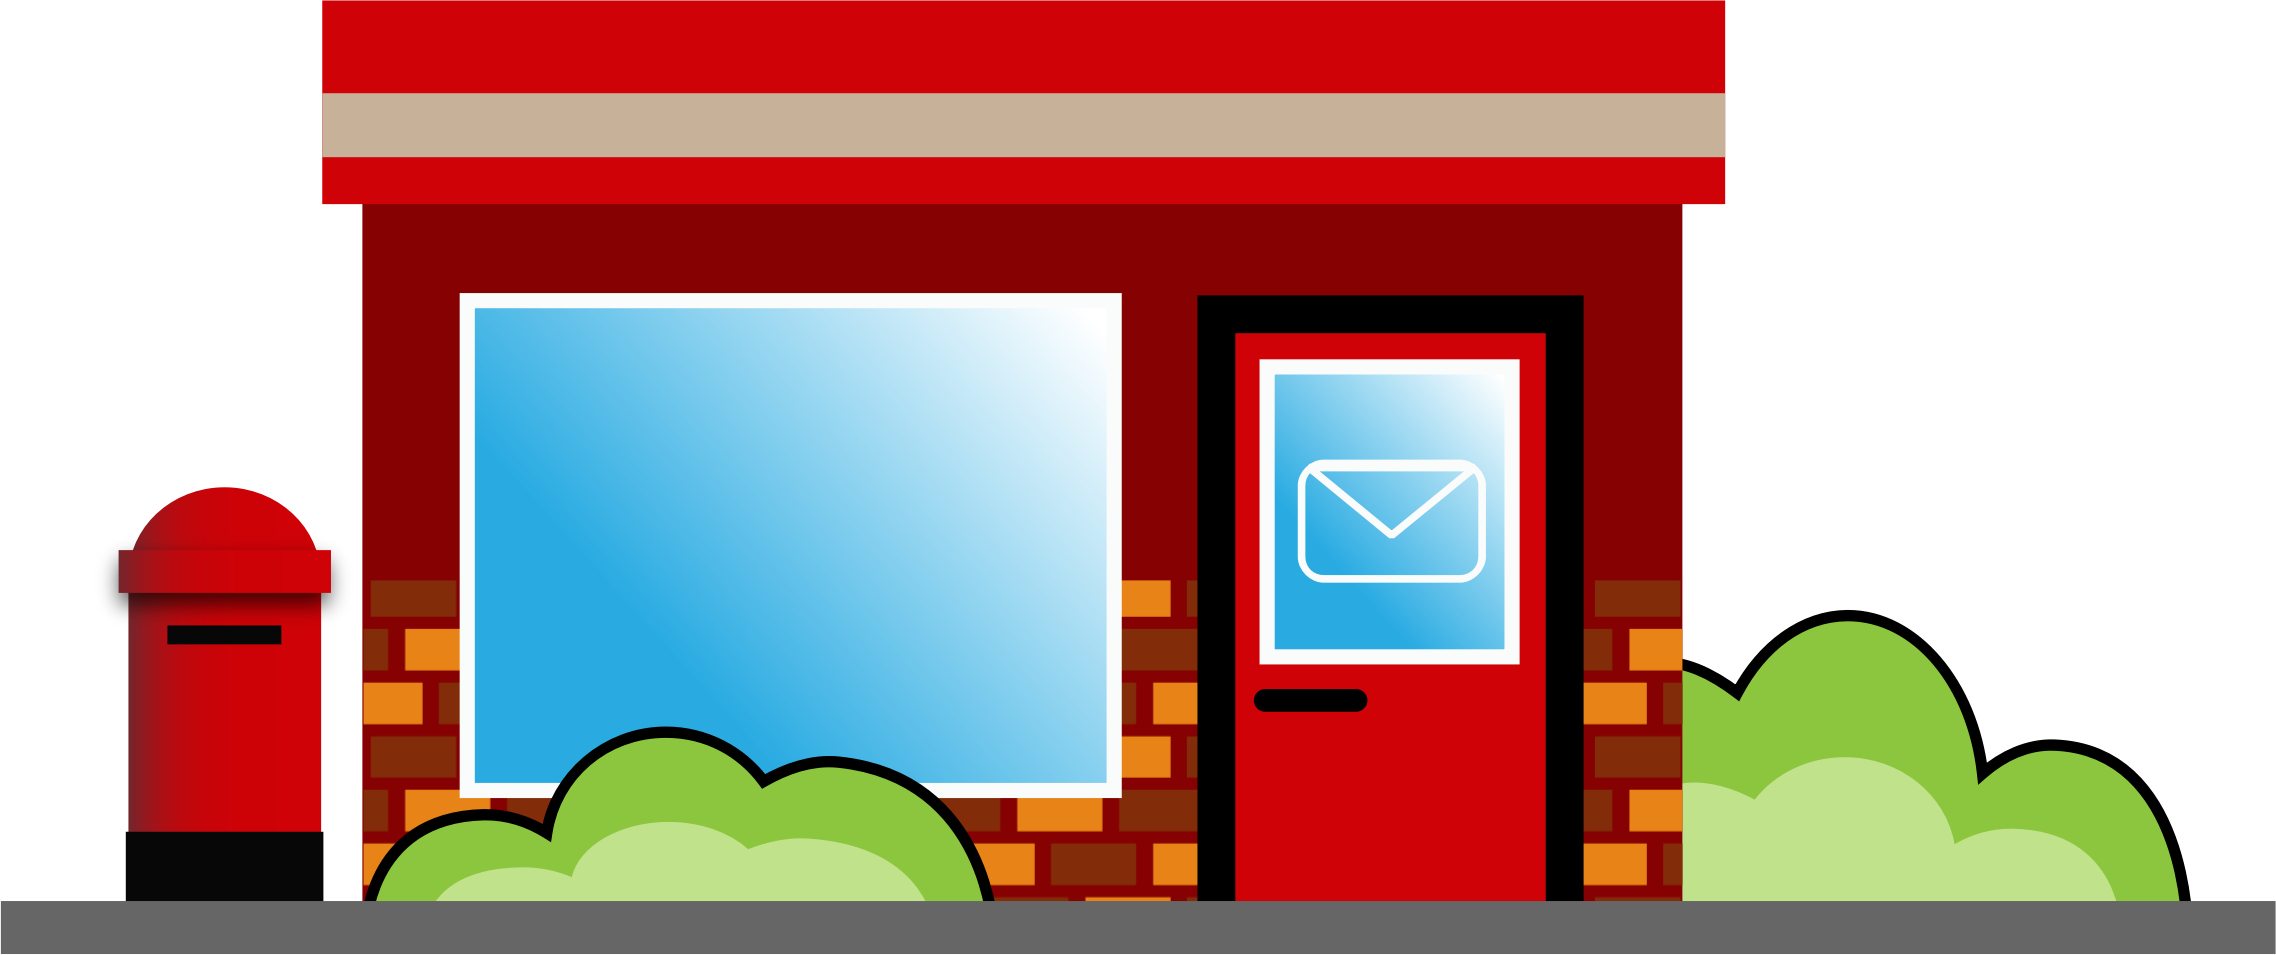 Big Image (Png) - Post Office, Transparent background PNG HD thumbnail